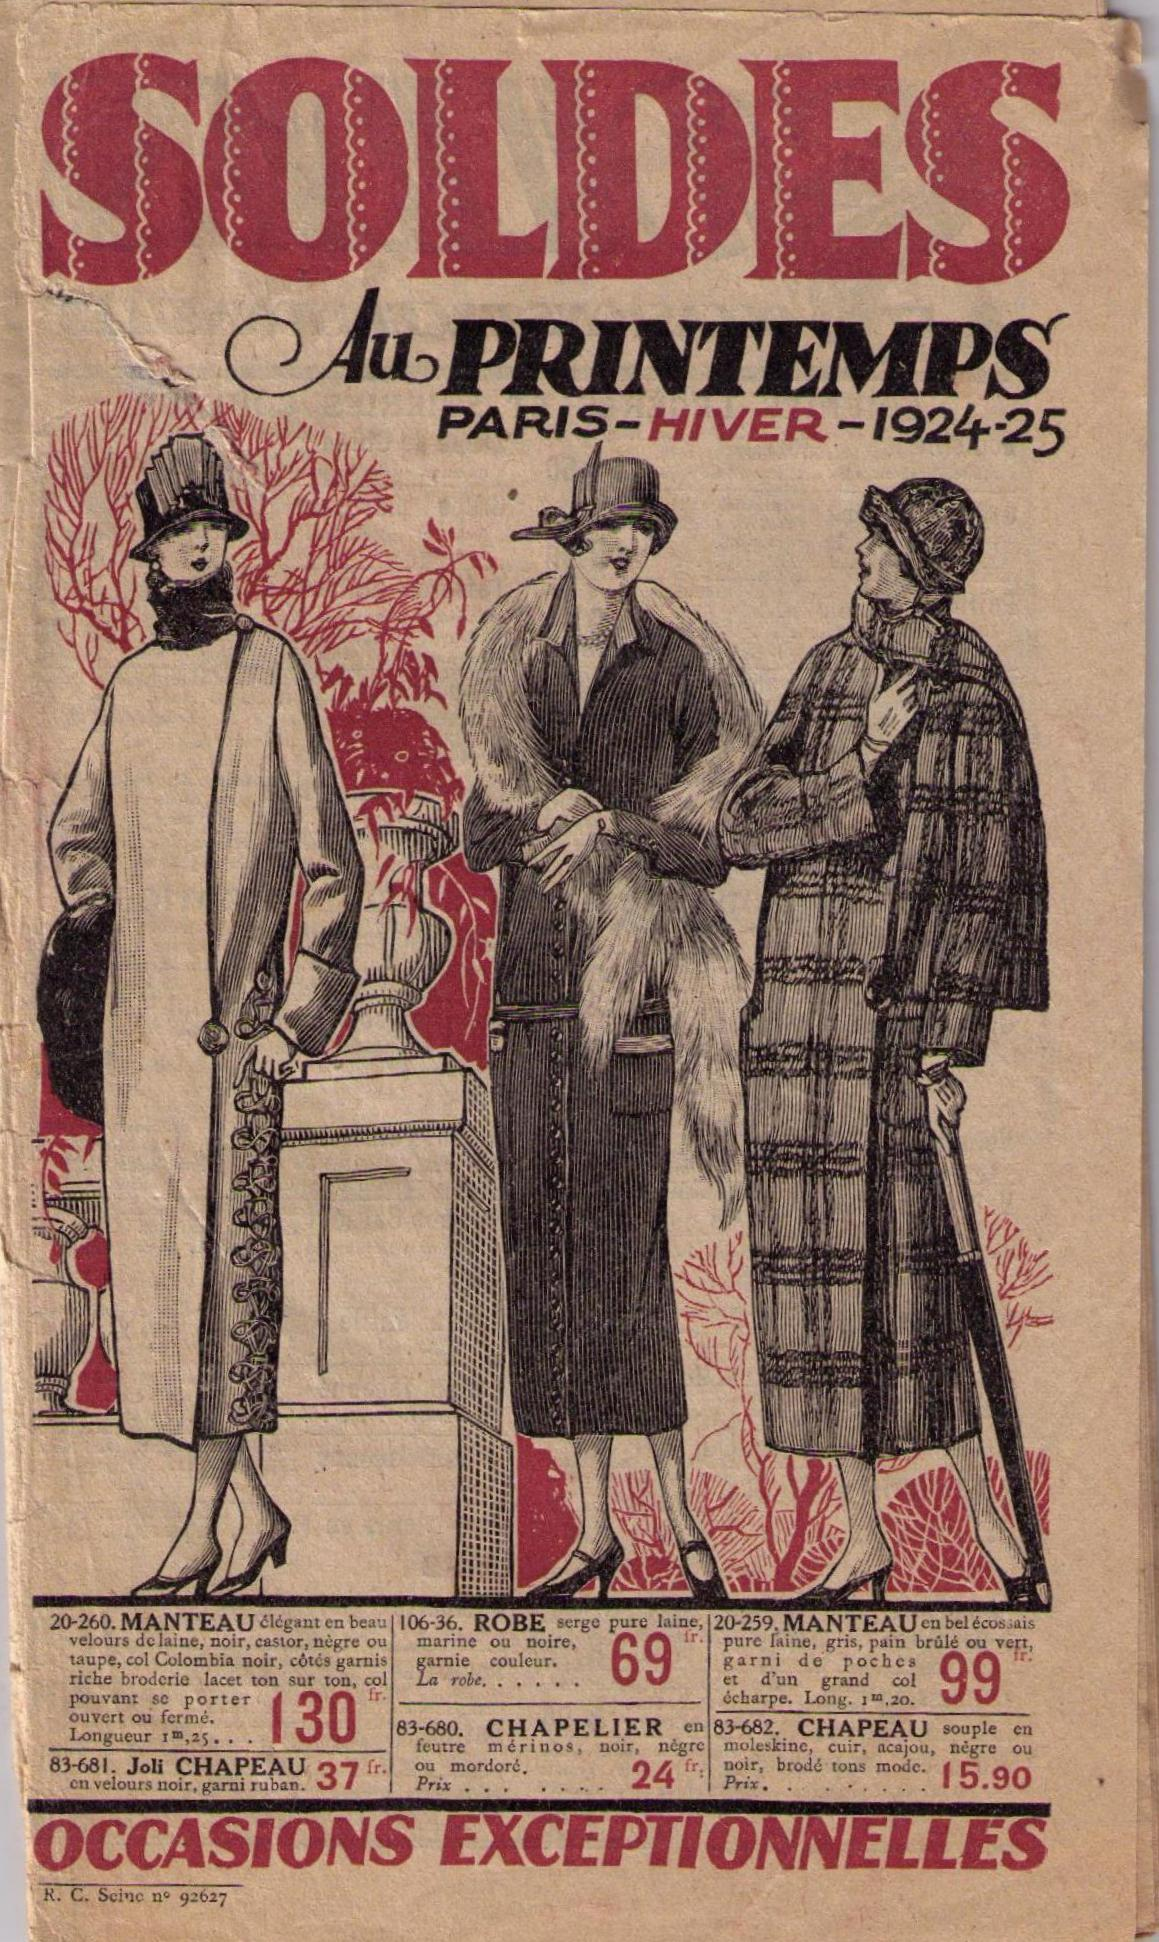 Sale catalogue for Paris department store Au Printemps, 1924-25. University of Brighton Dress History Teaching Collection.